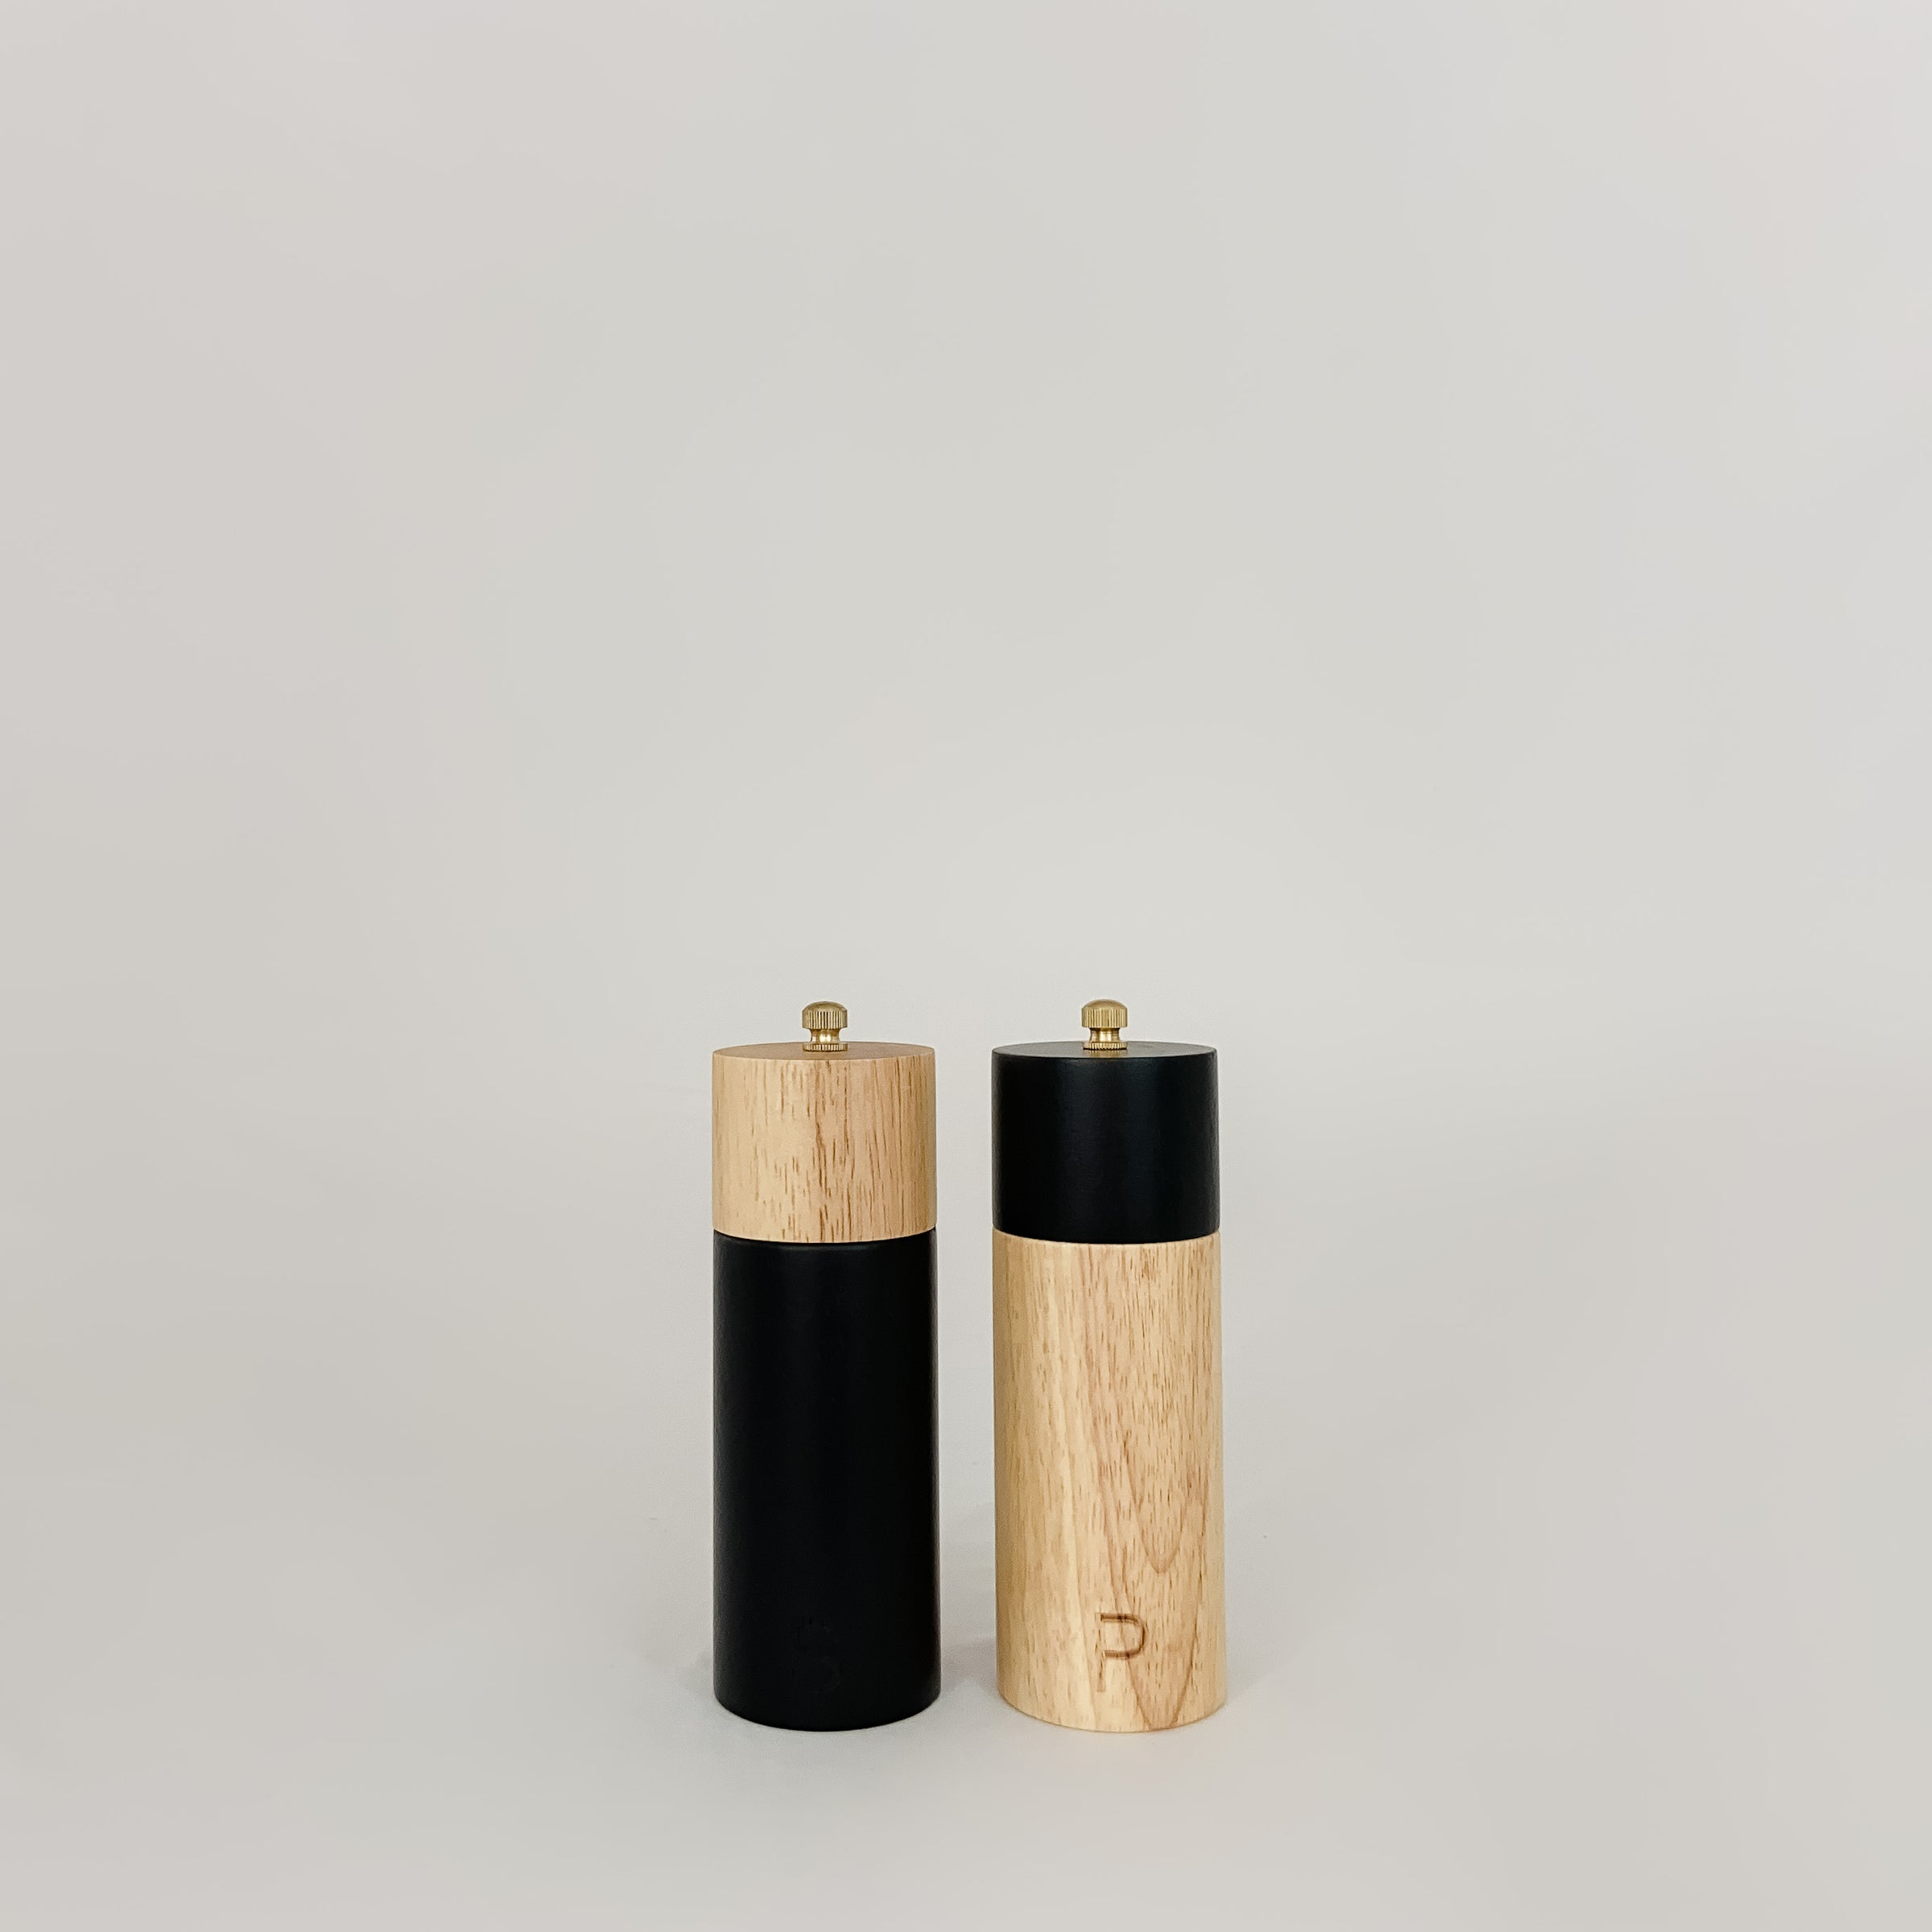 Two-Tone Rubber Wood Salt & Pepper Mills, Black & Natural